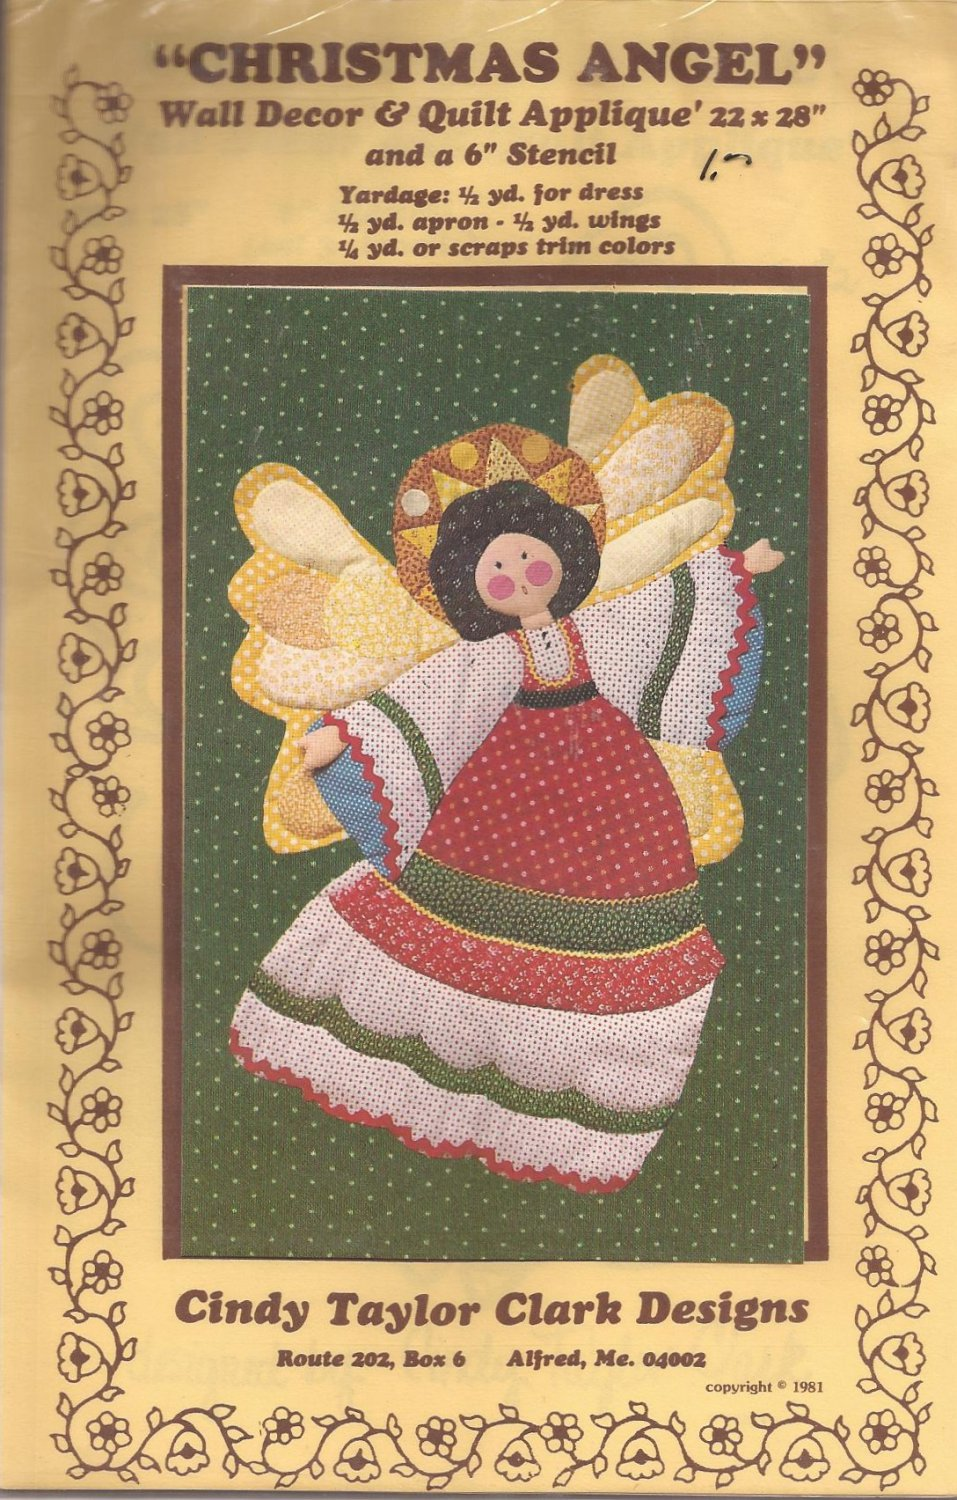 1981 Christmas Angel Wall Quilt Applique Stencil Pattern